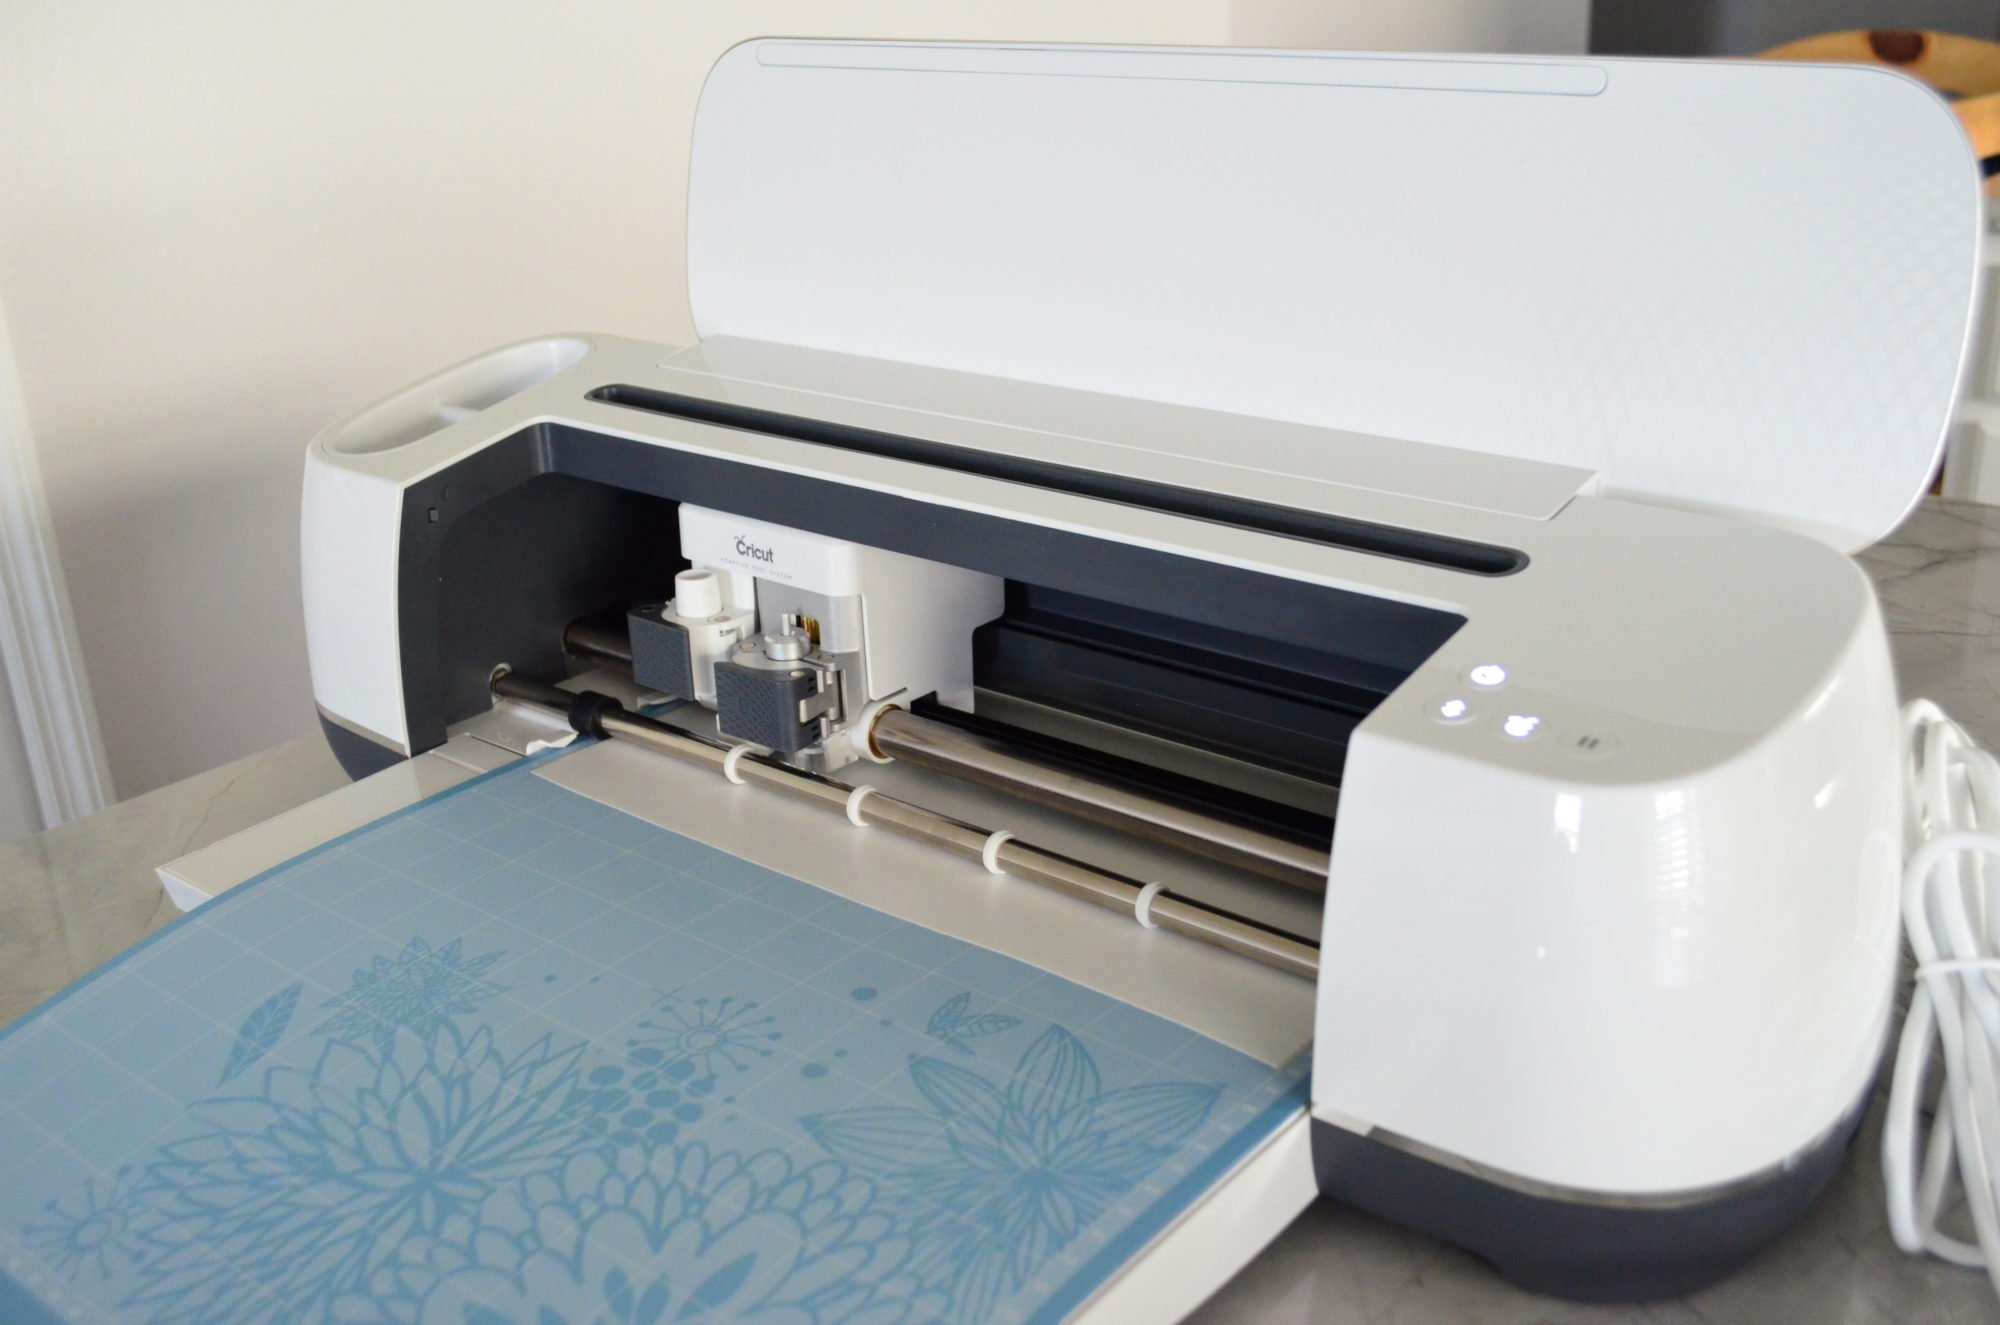 Cricut Maker Cutting Vinyl